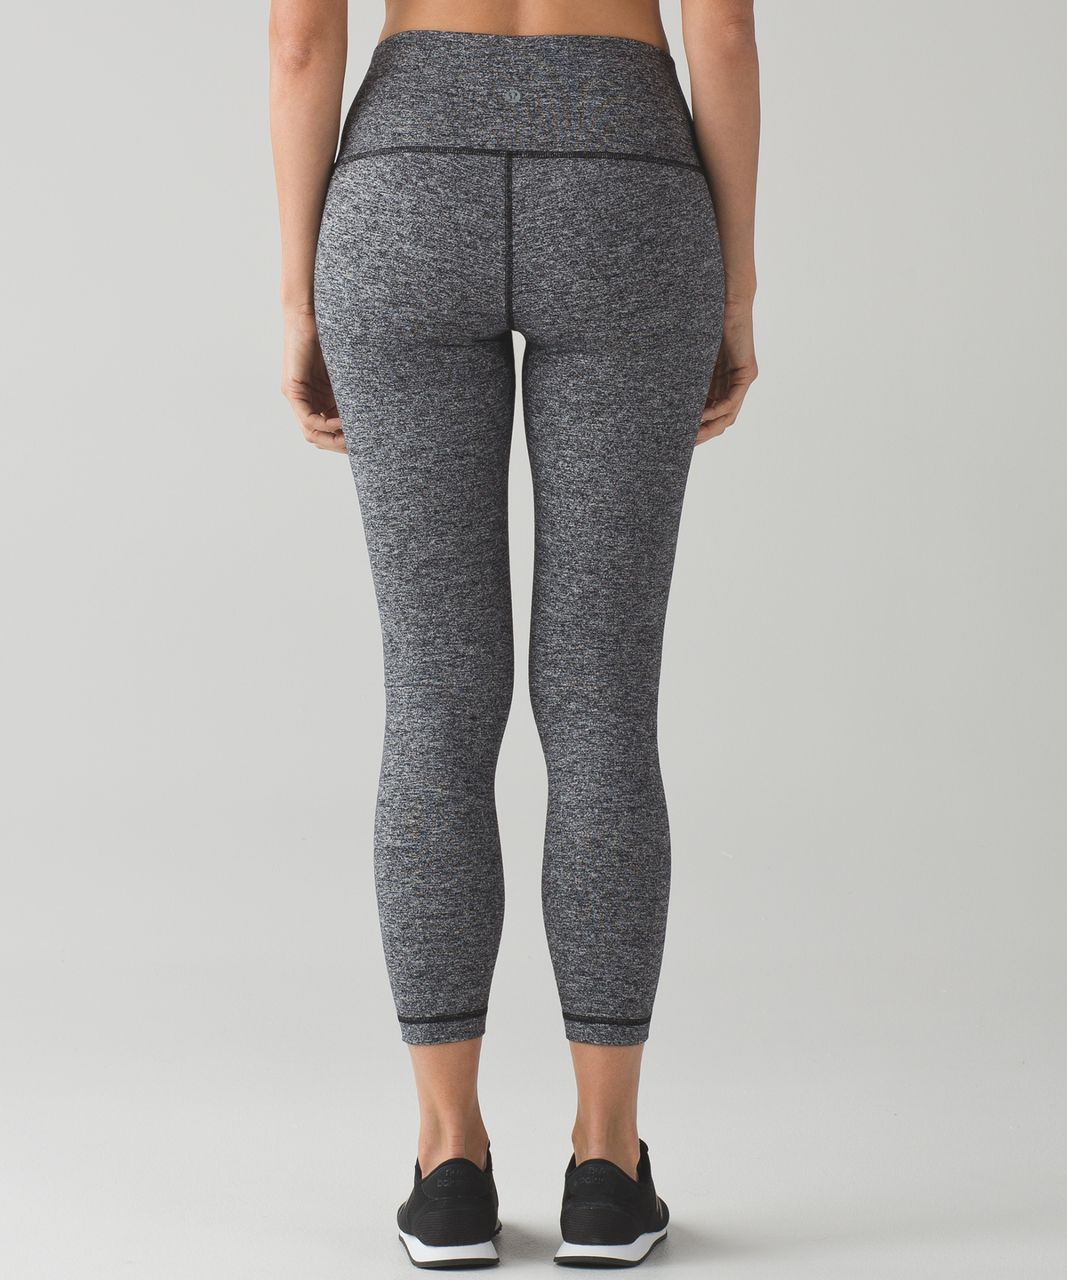 Lululemon High Times Pant - Heathered Black (First Release)